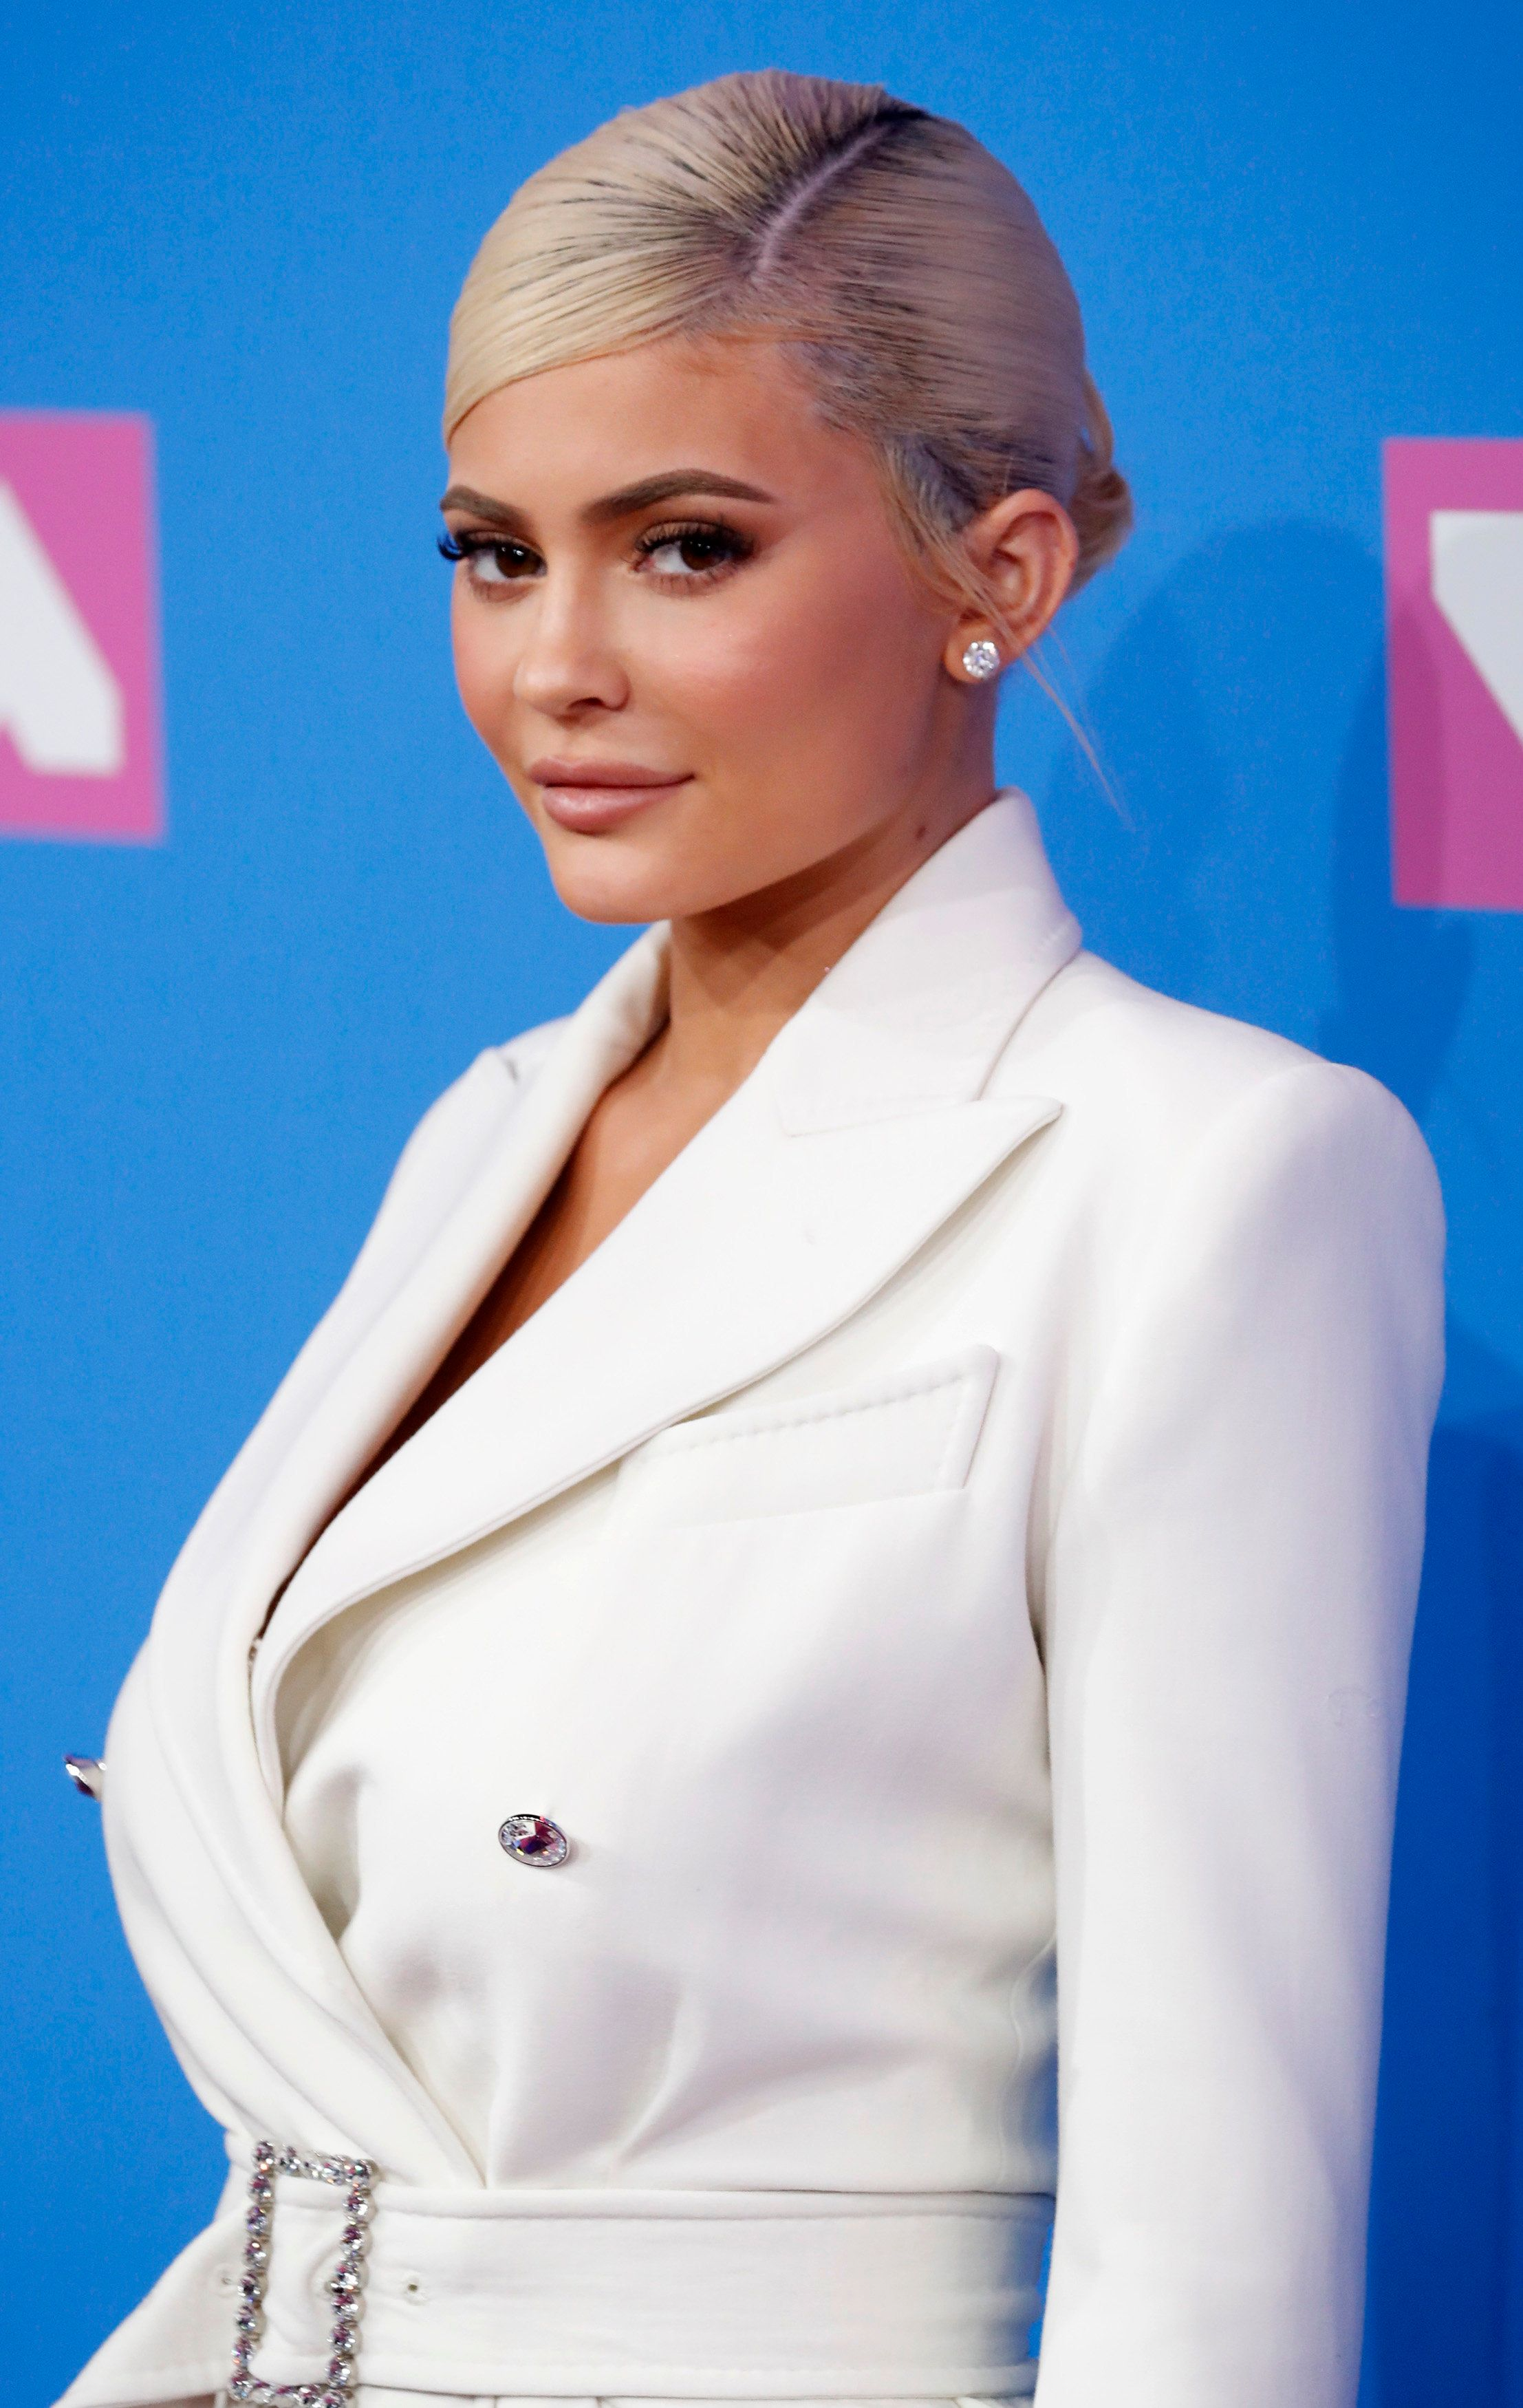 2018 MTV Video Music Awards - Arrivals - Radio City Music Hall, New York, U.S., August 20, 2018. - Kylie Jenner. REUTERS/Andrew Kelly